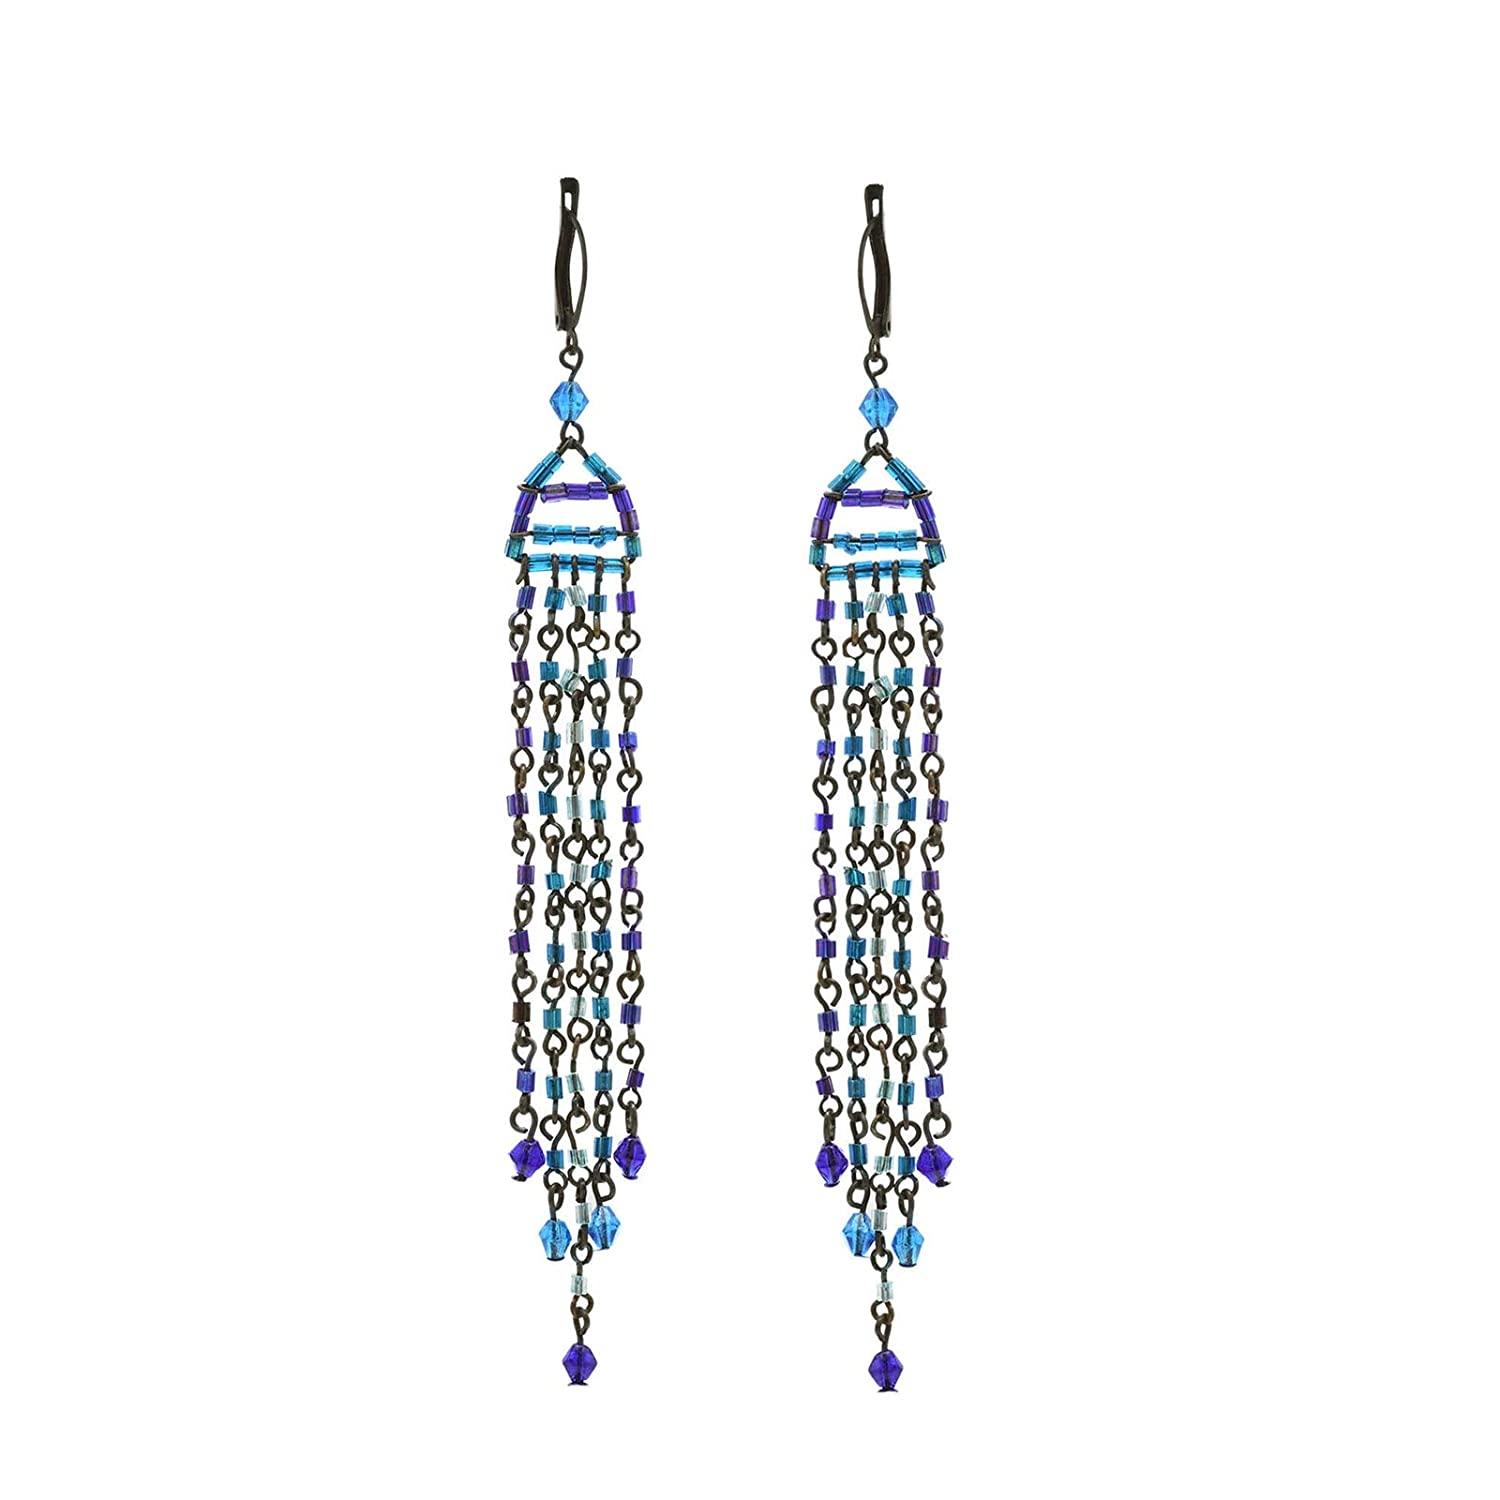 Zephyrr Tibetan Drop Earrings Silver Tone Casual Daily Wear Statement Jewelry For Women JAE-3350 Blue